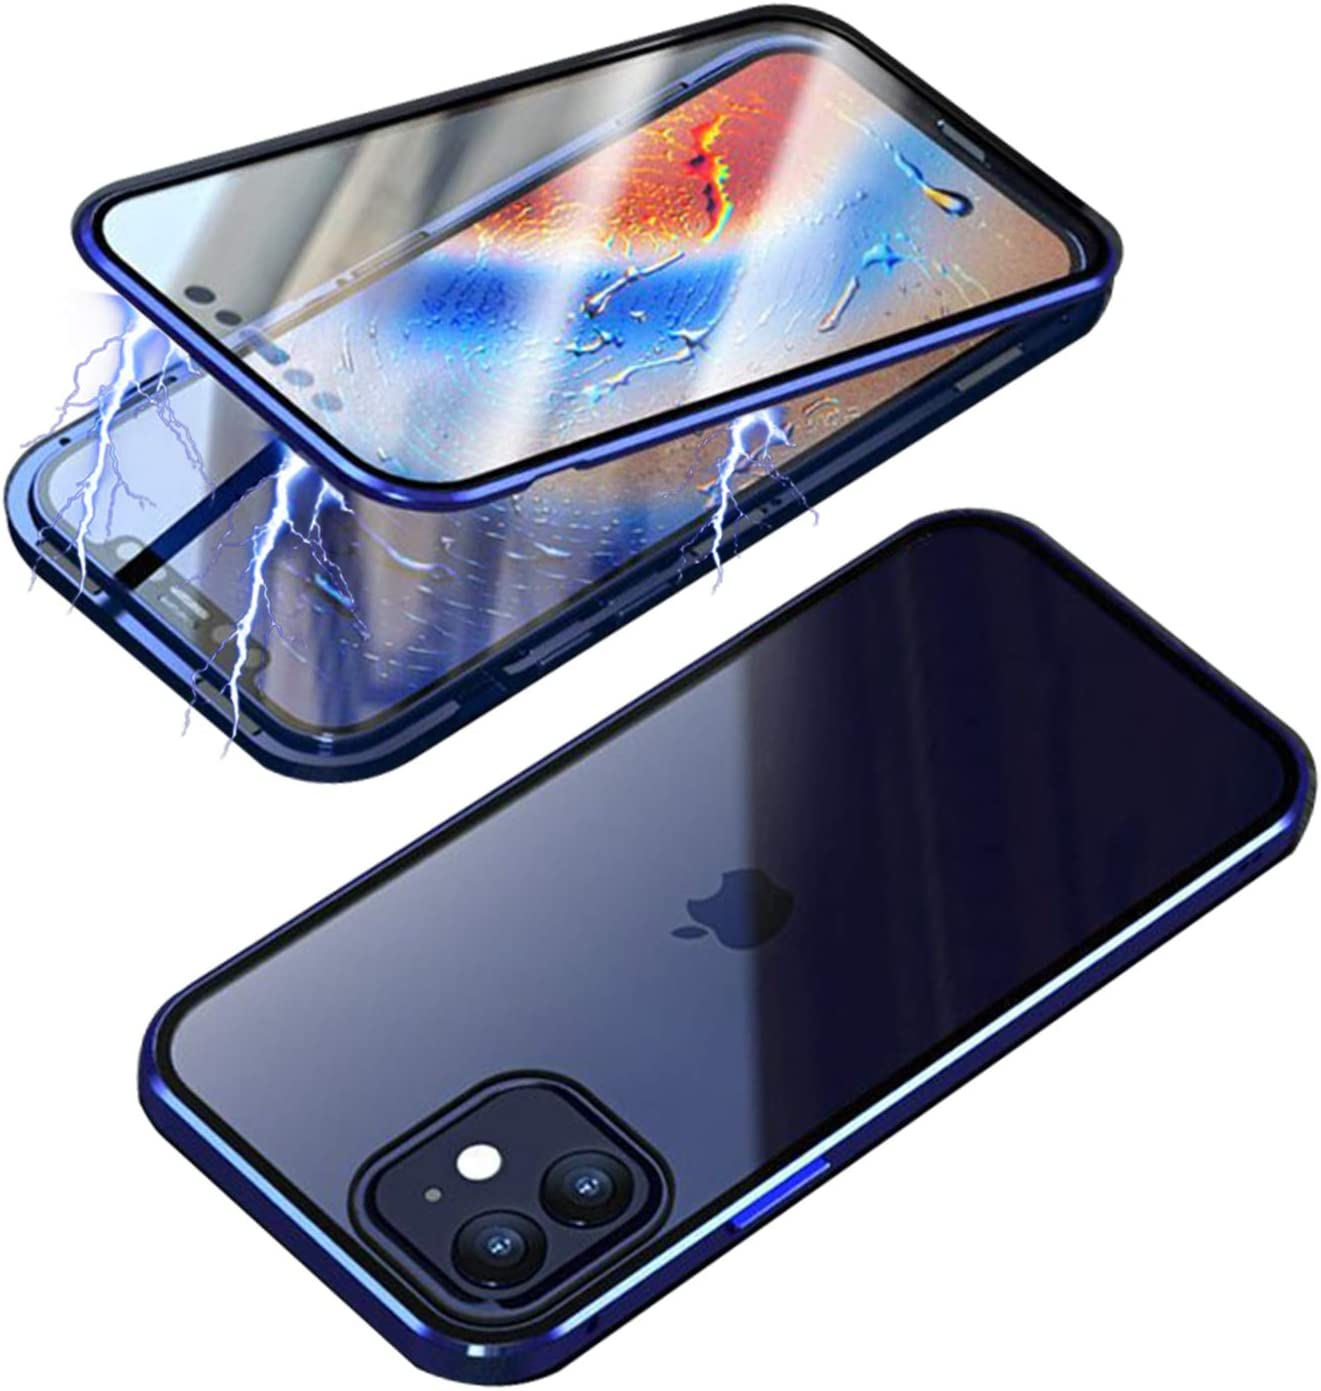 RANYOK Magnetic Case Compatible with iPhone inch 12 Pro 6.7 Max 47% Very popular! OFF